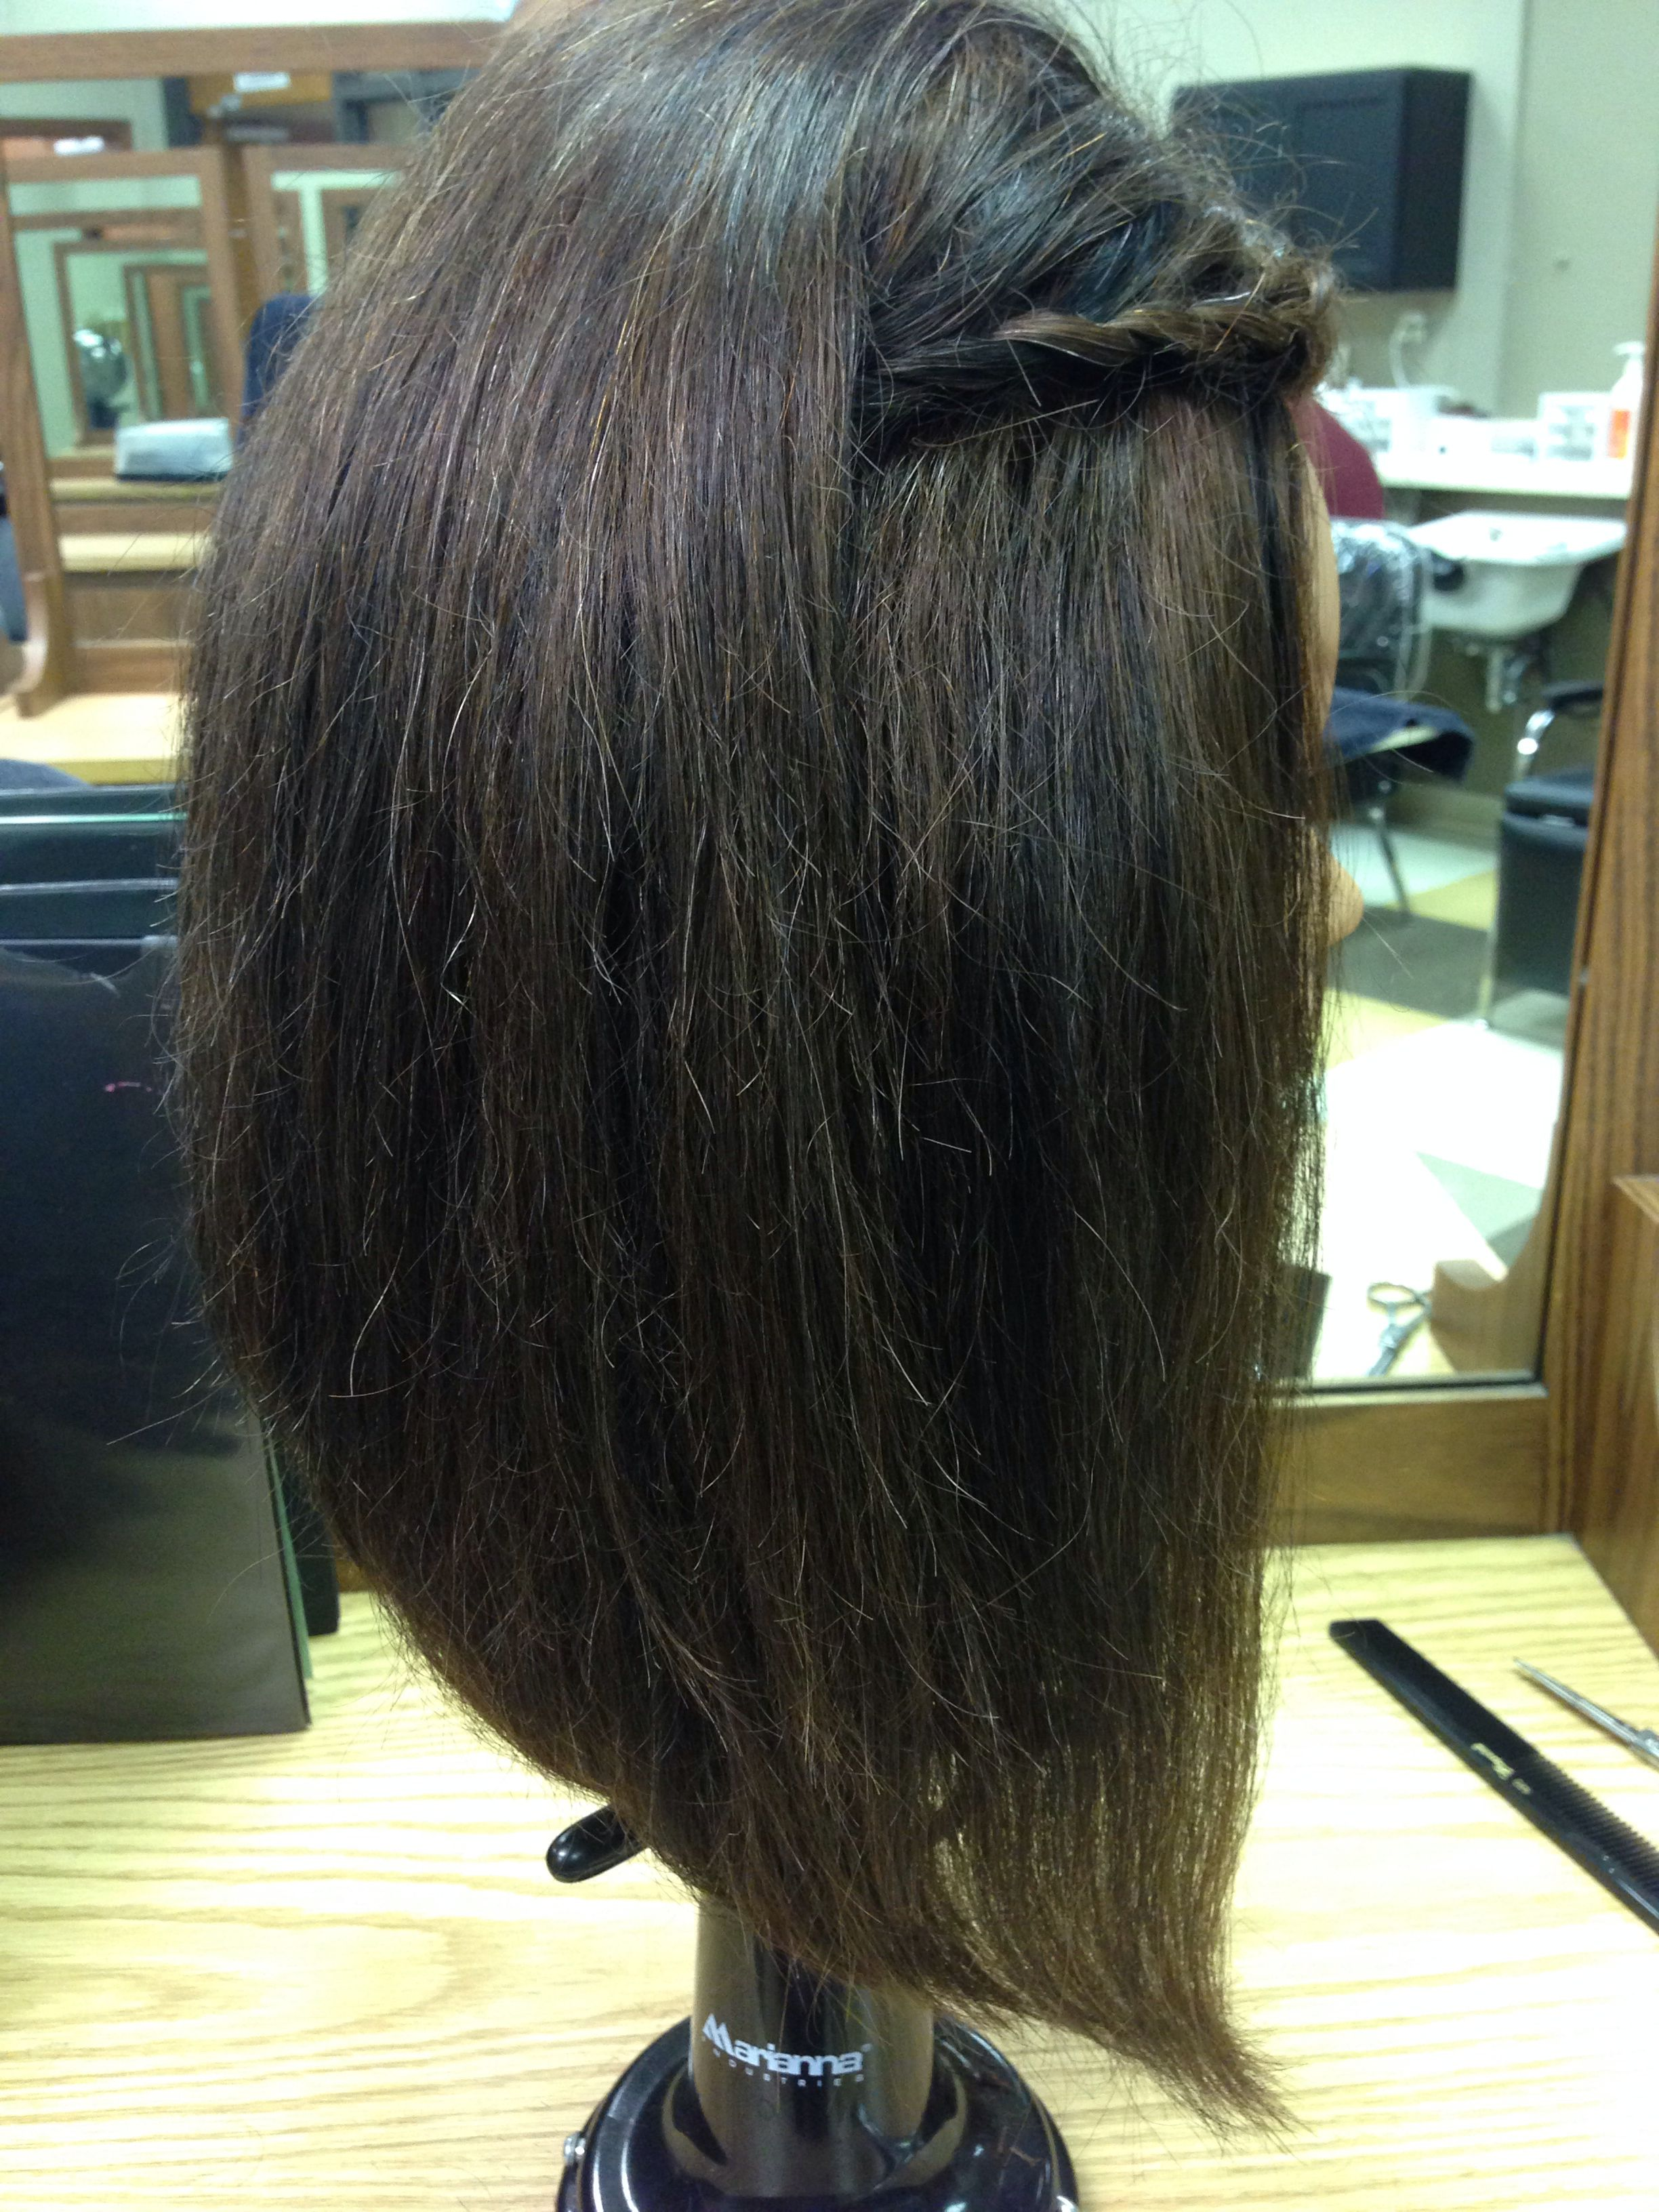 Long-layered bob. 45 degree. Over directed angle. Flat ironed & back-combed.